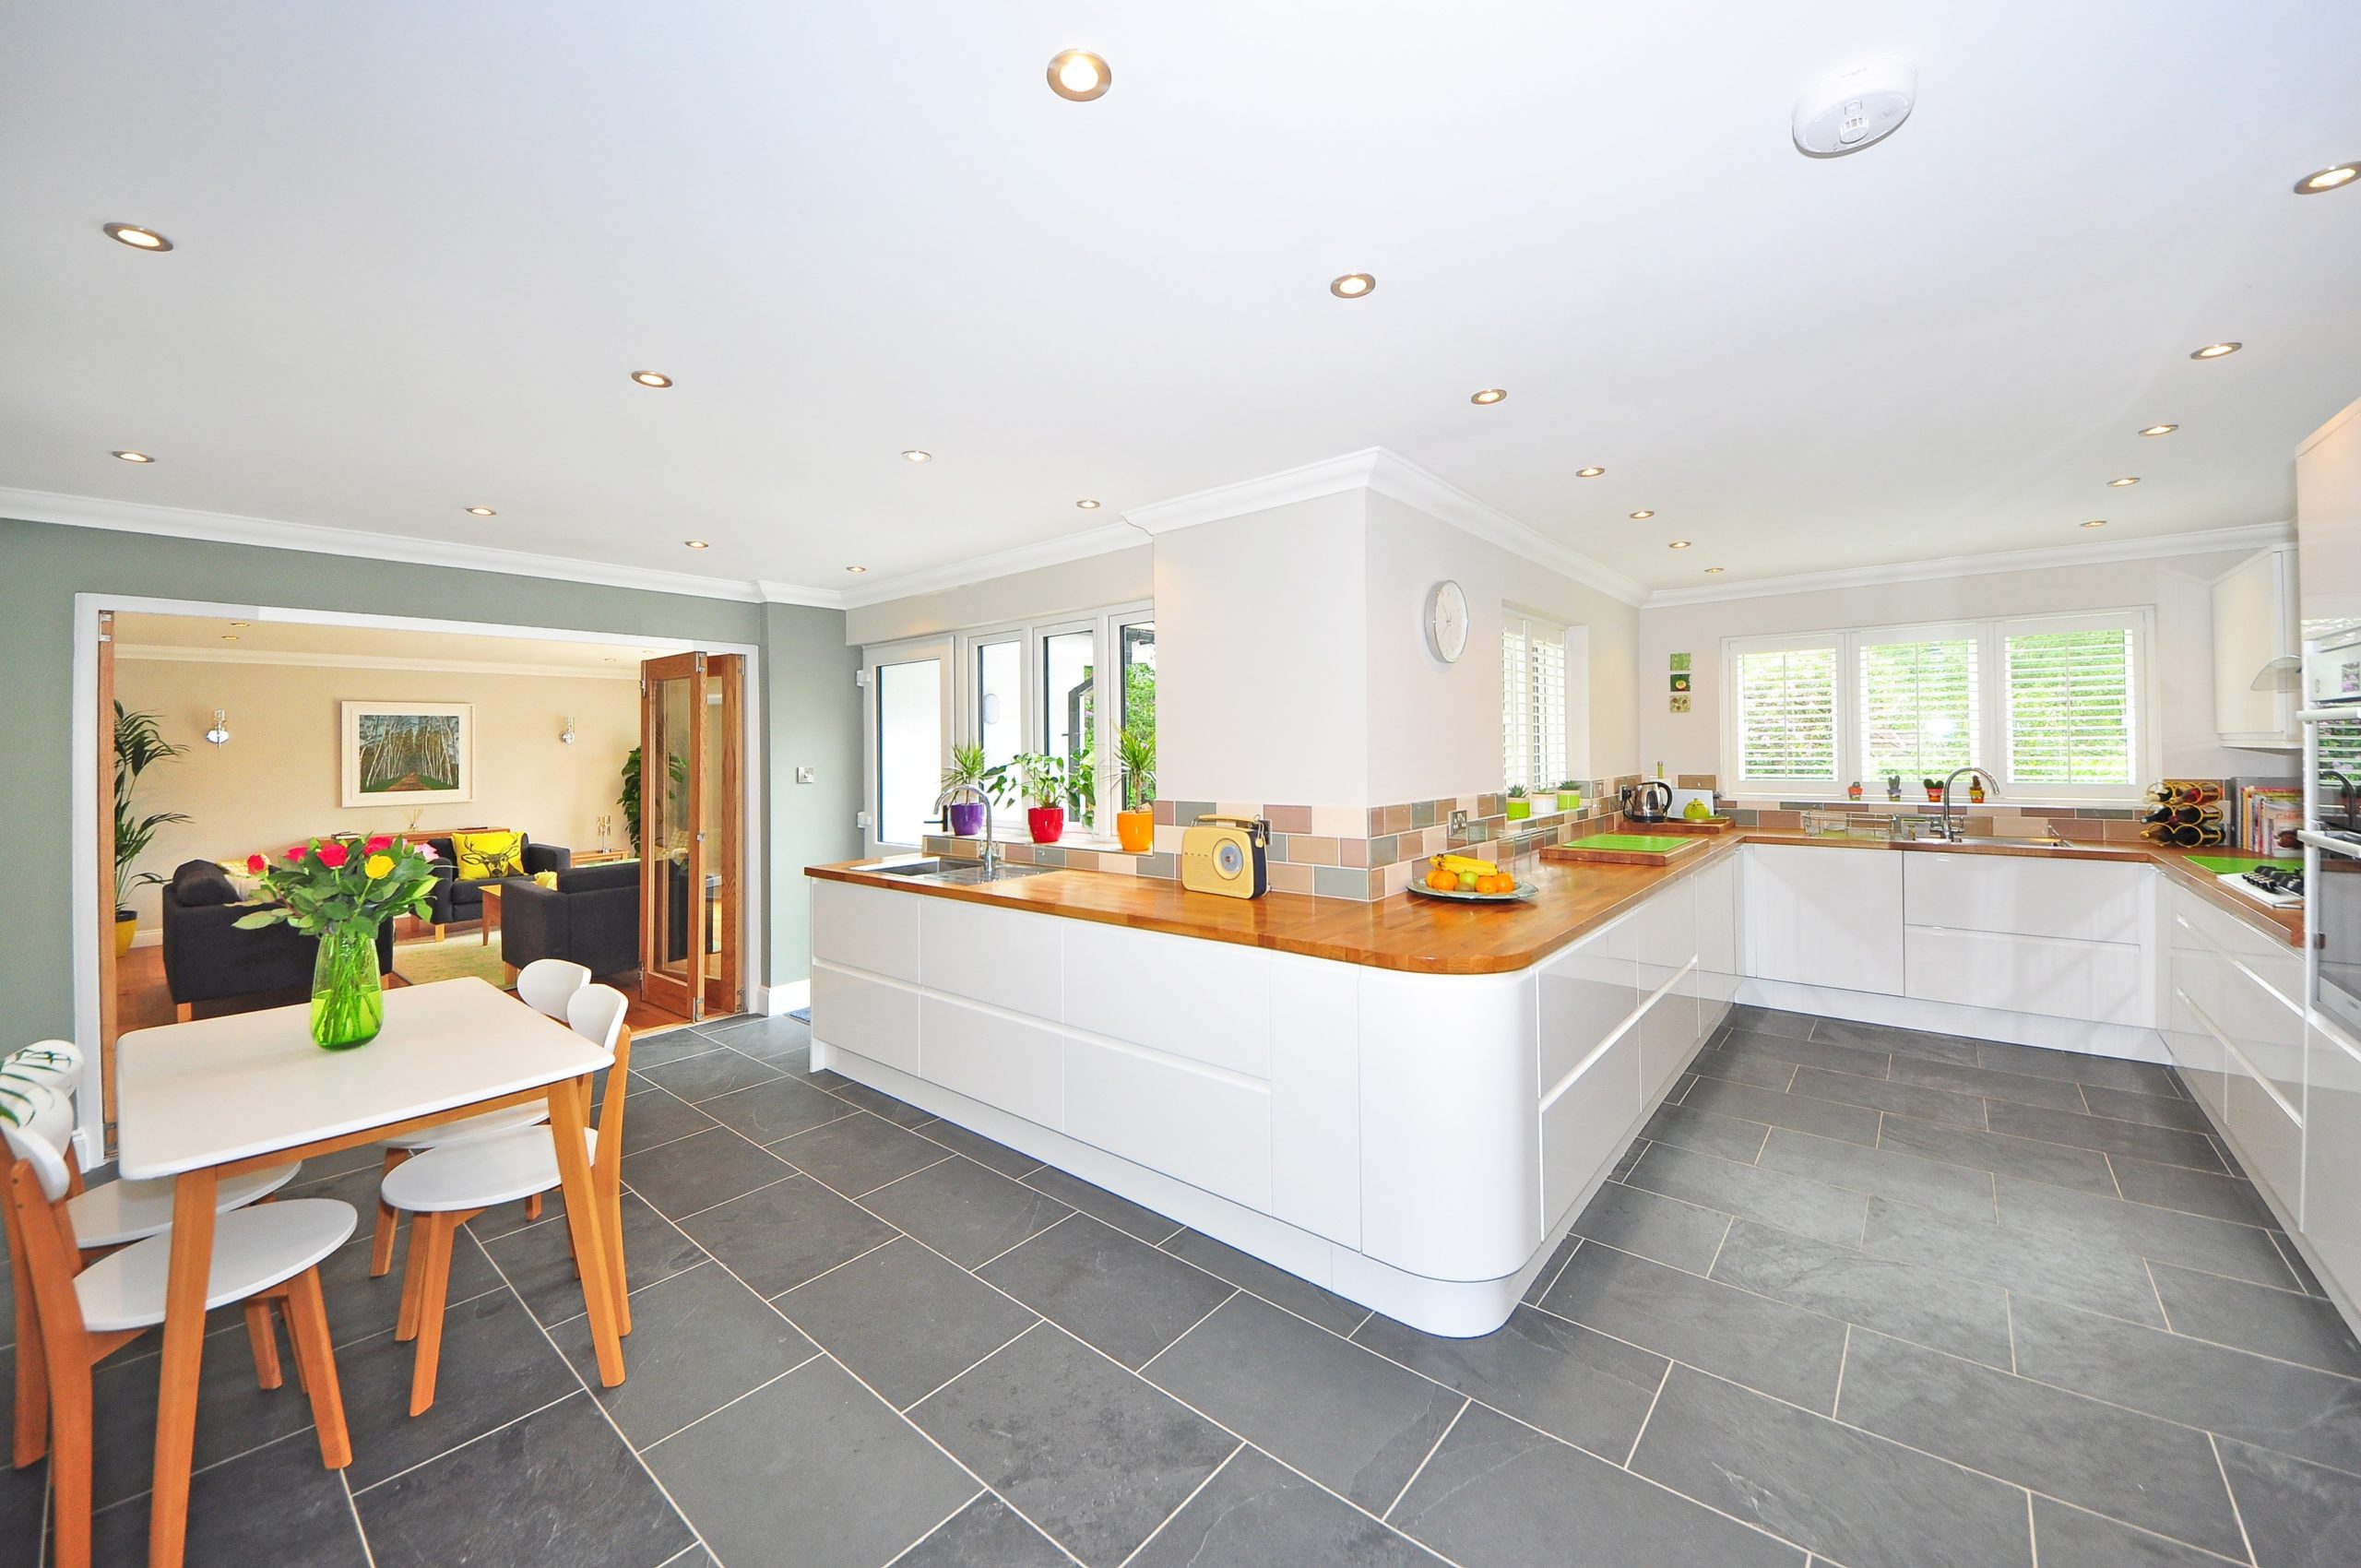 Best selling floor types in a kitchen